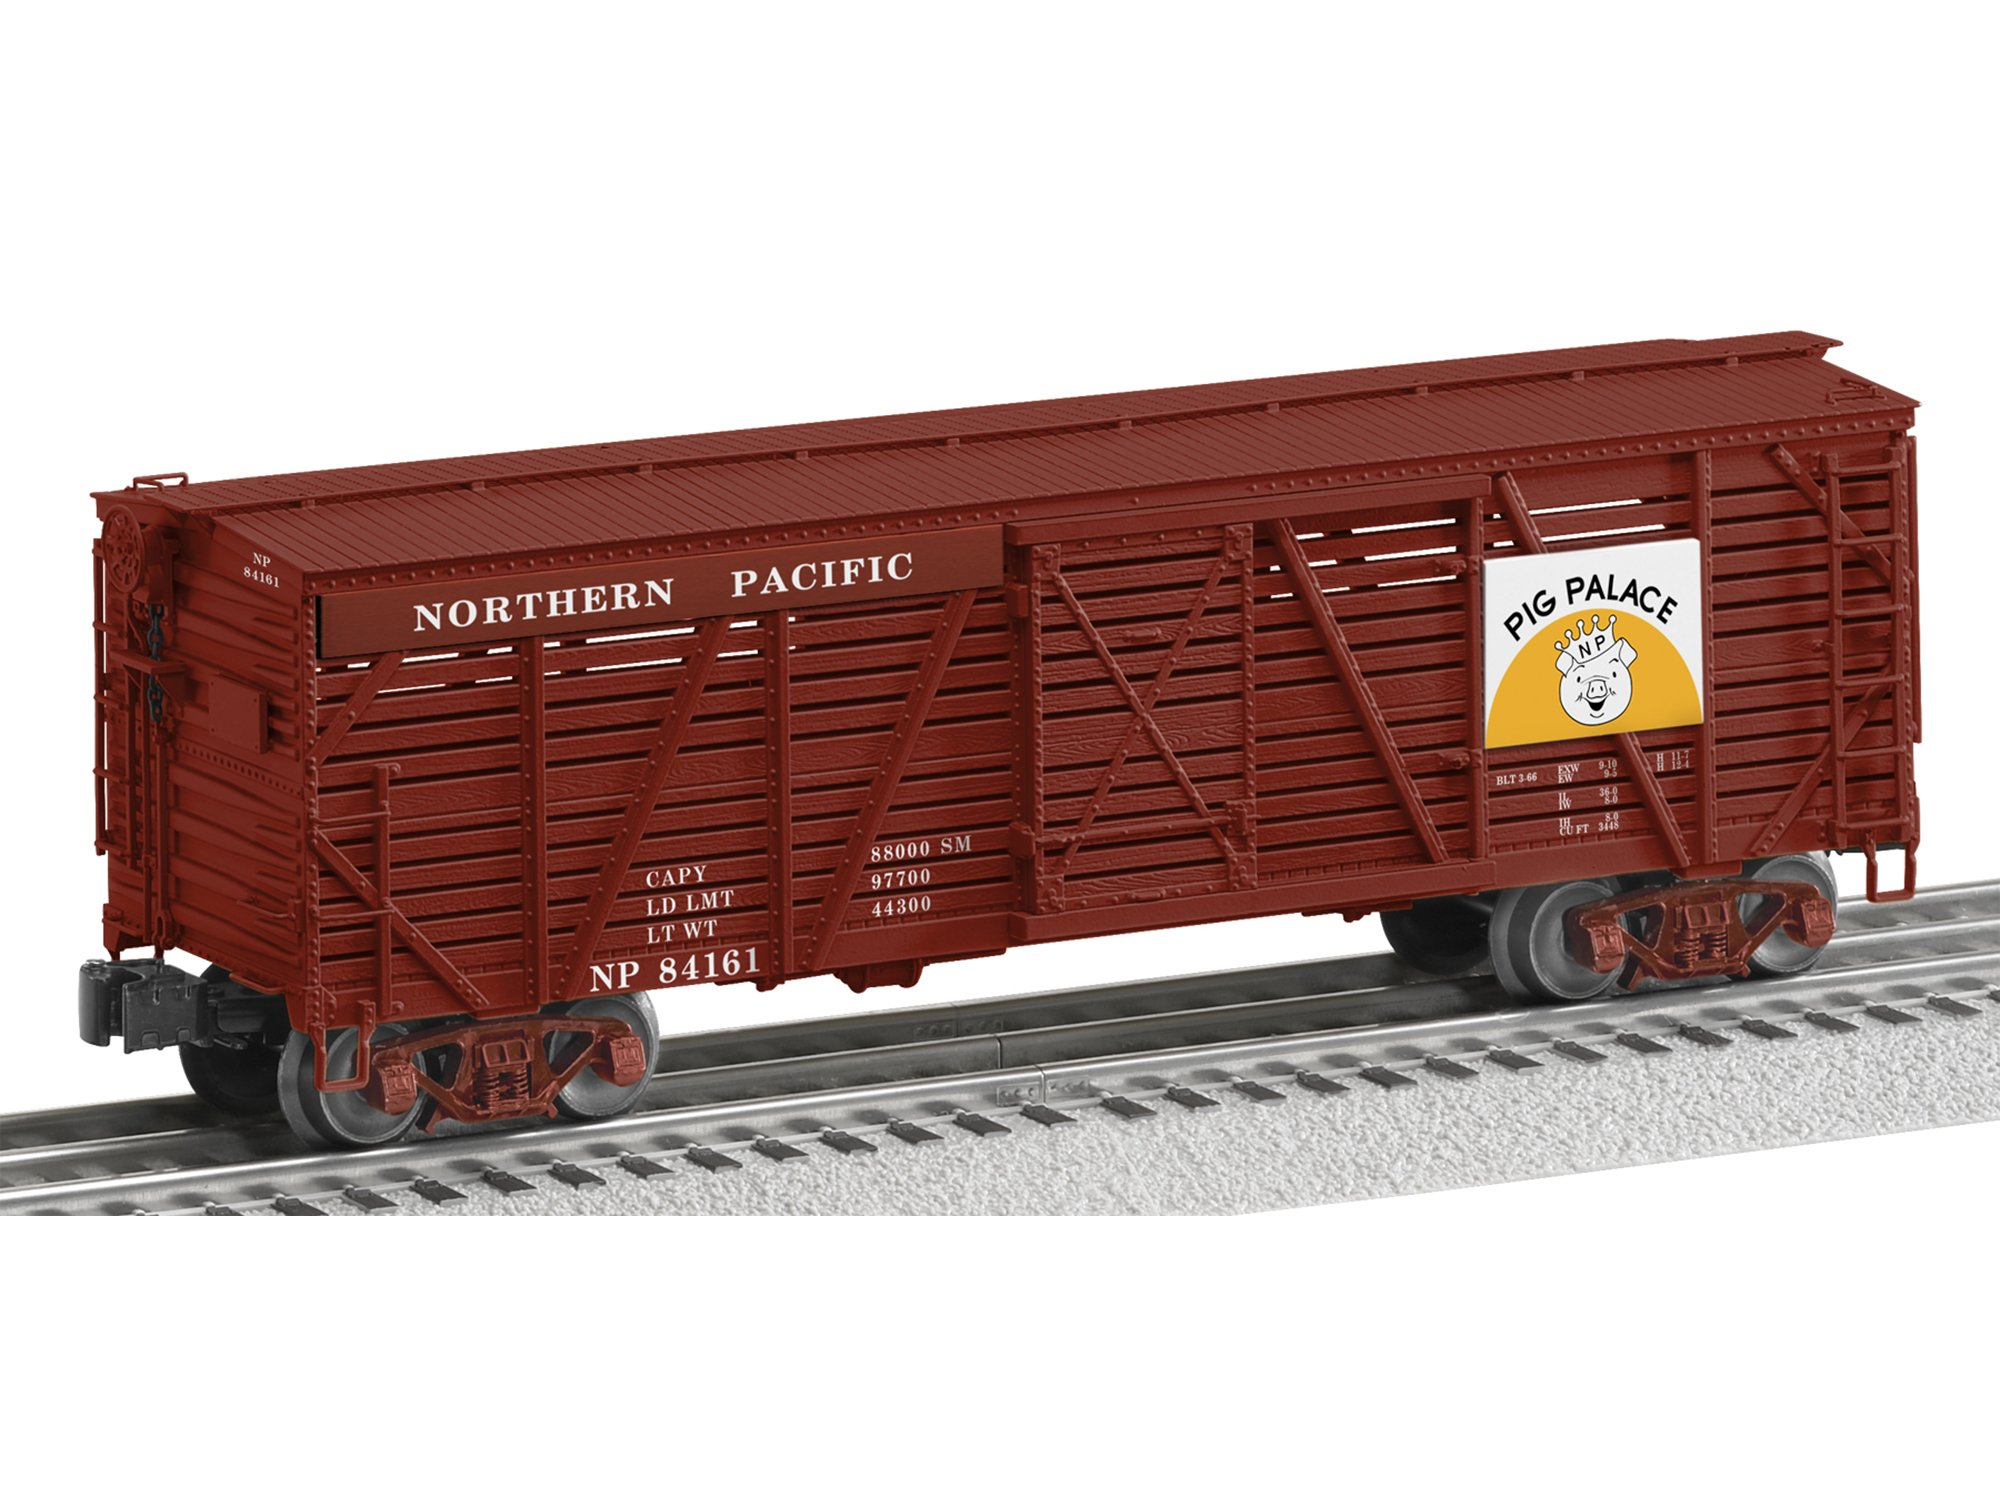 Lionel 6-82515 O Northern Pacific ACF 40-Ton Stock Car 3-Rail - Ready to Run #84161